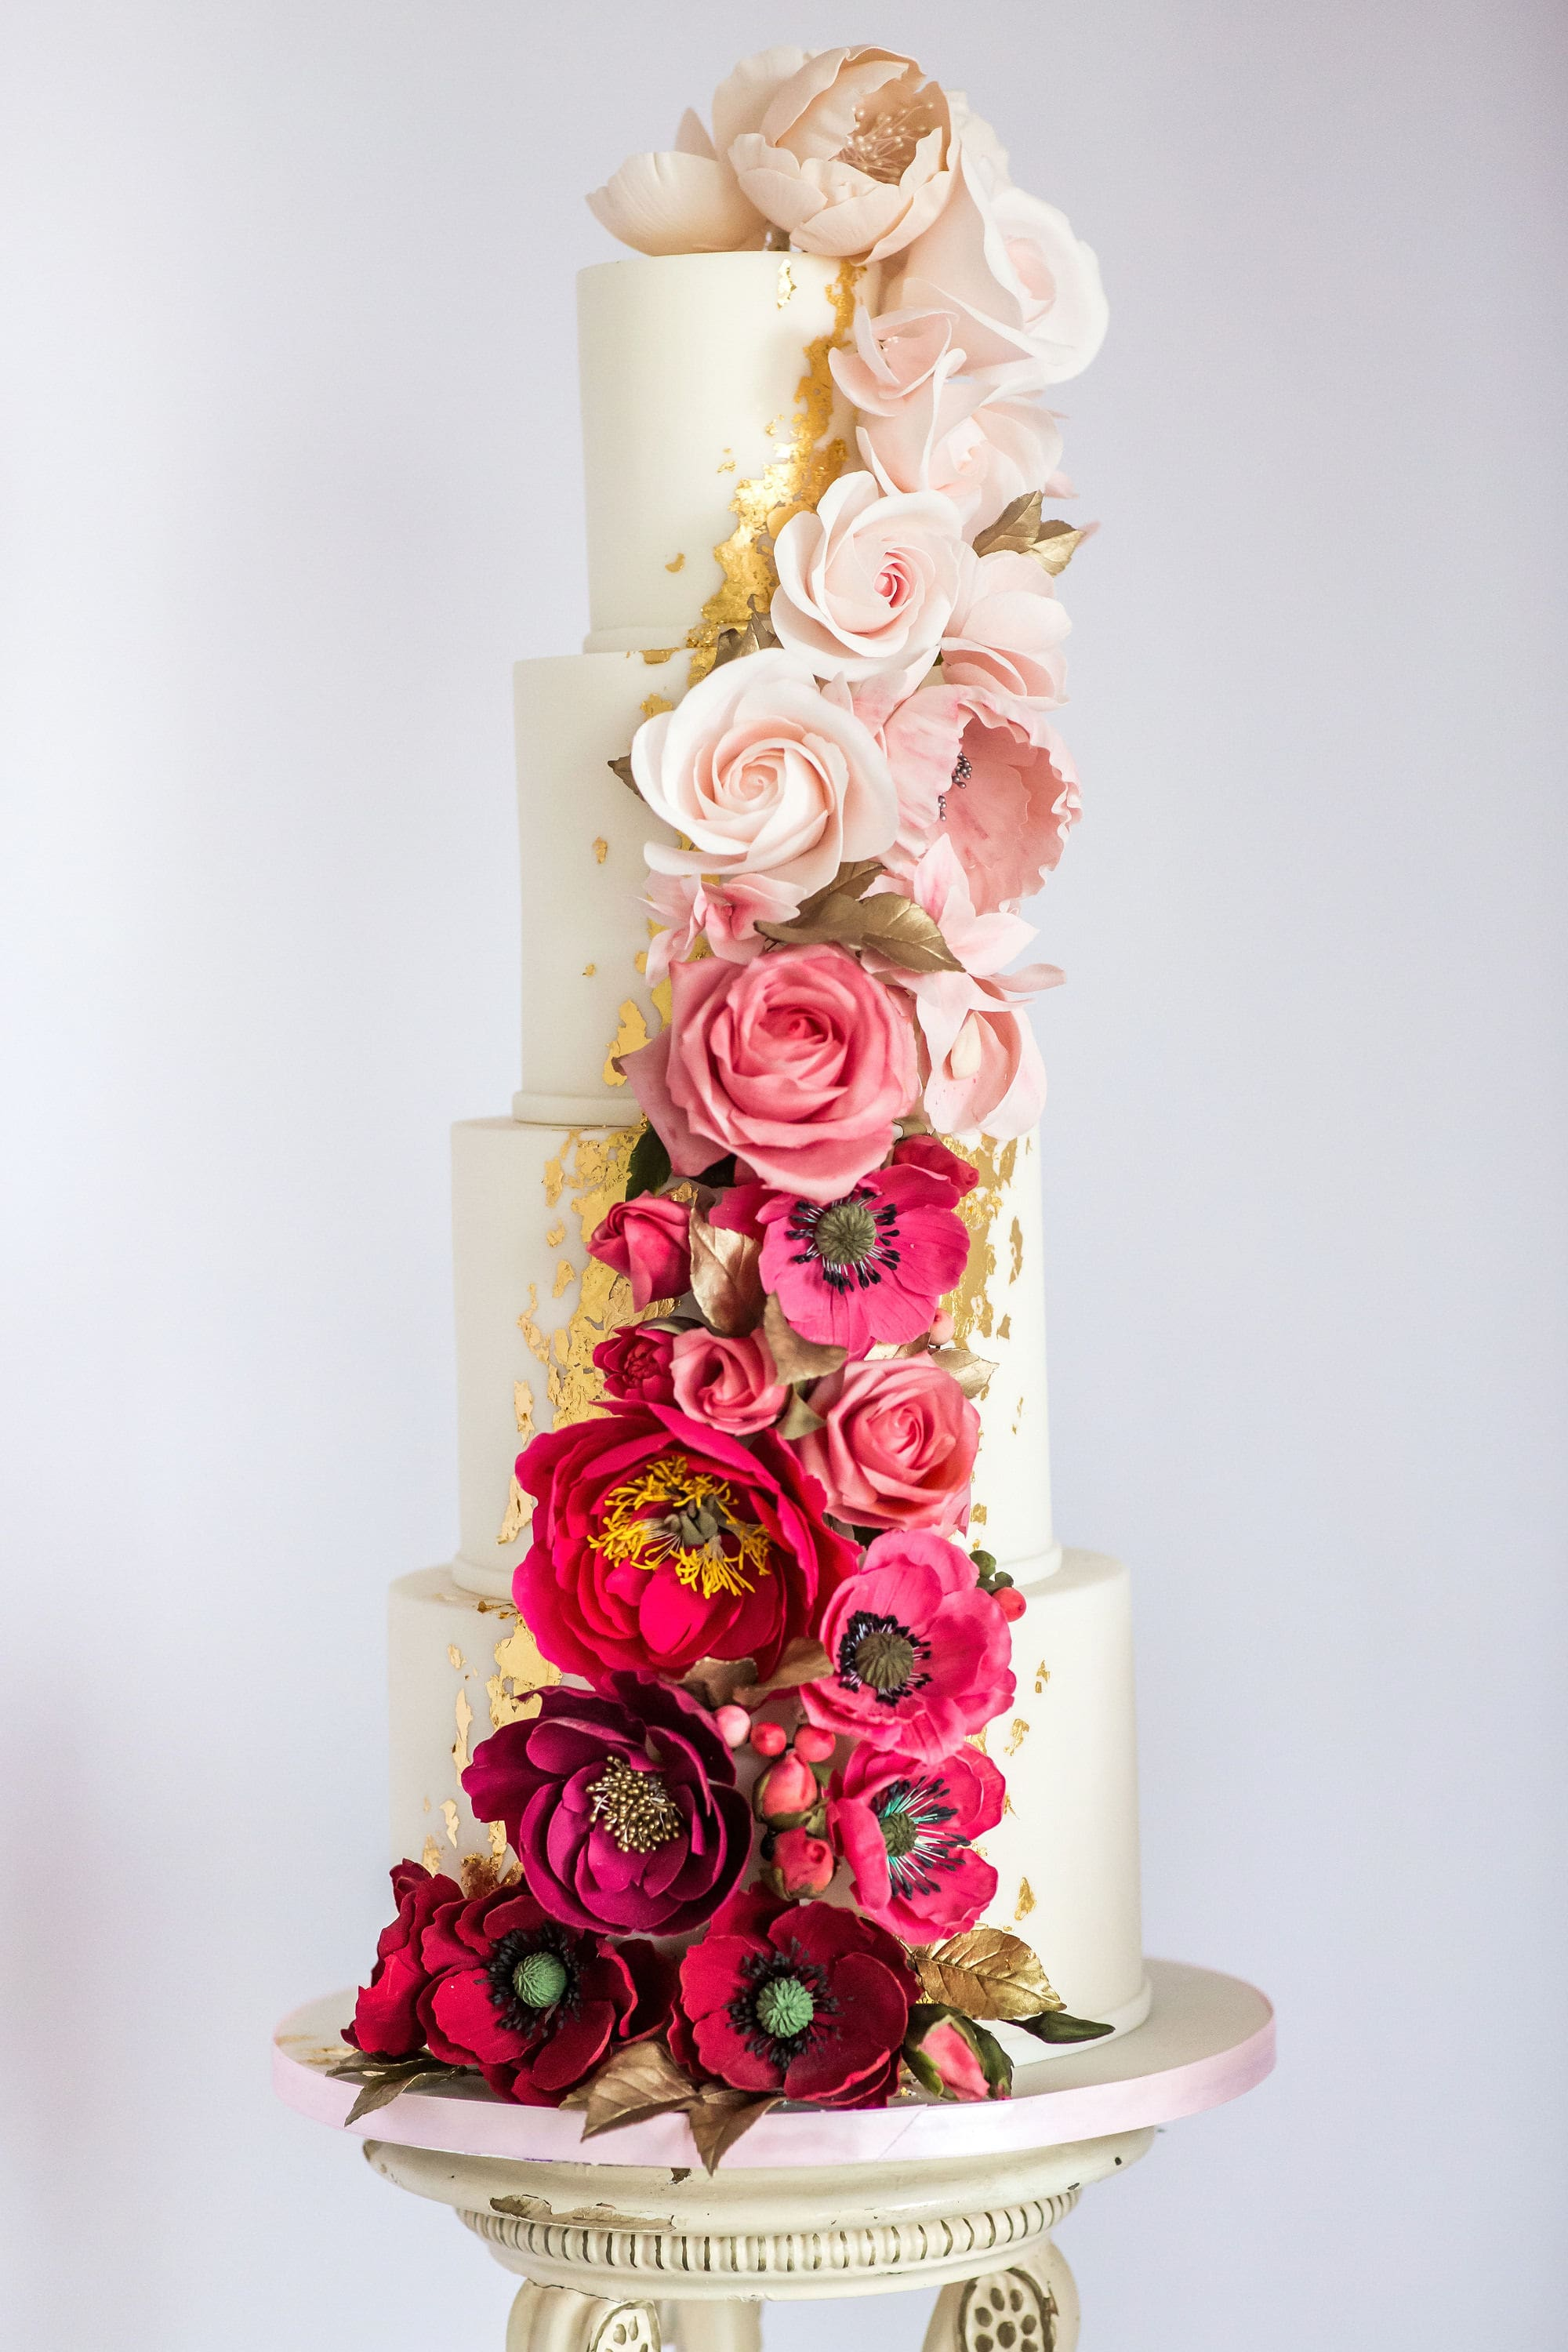 ombre sugar flower cascade on this glamorous showstopper wedding cake by Meadowsweet Cakes, a Hertfordshire wedding cake company. Photography by Rafe Abrook Photography